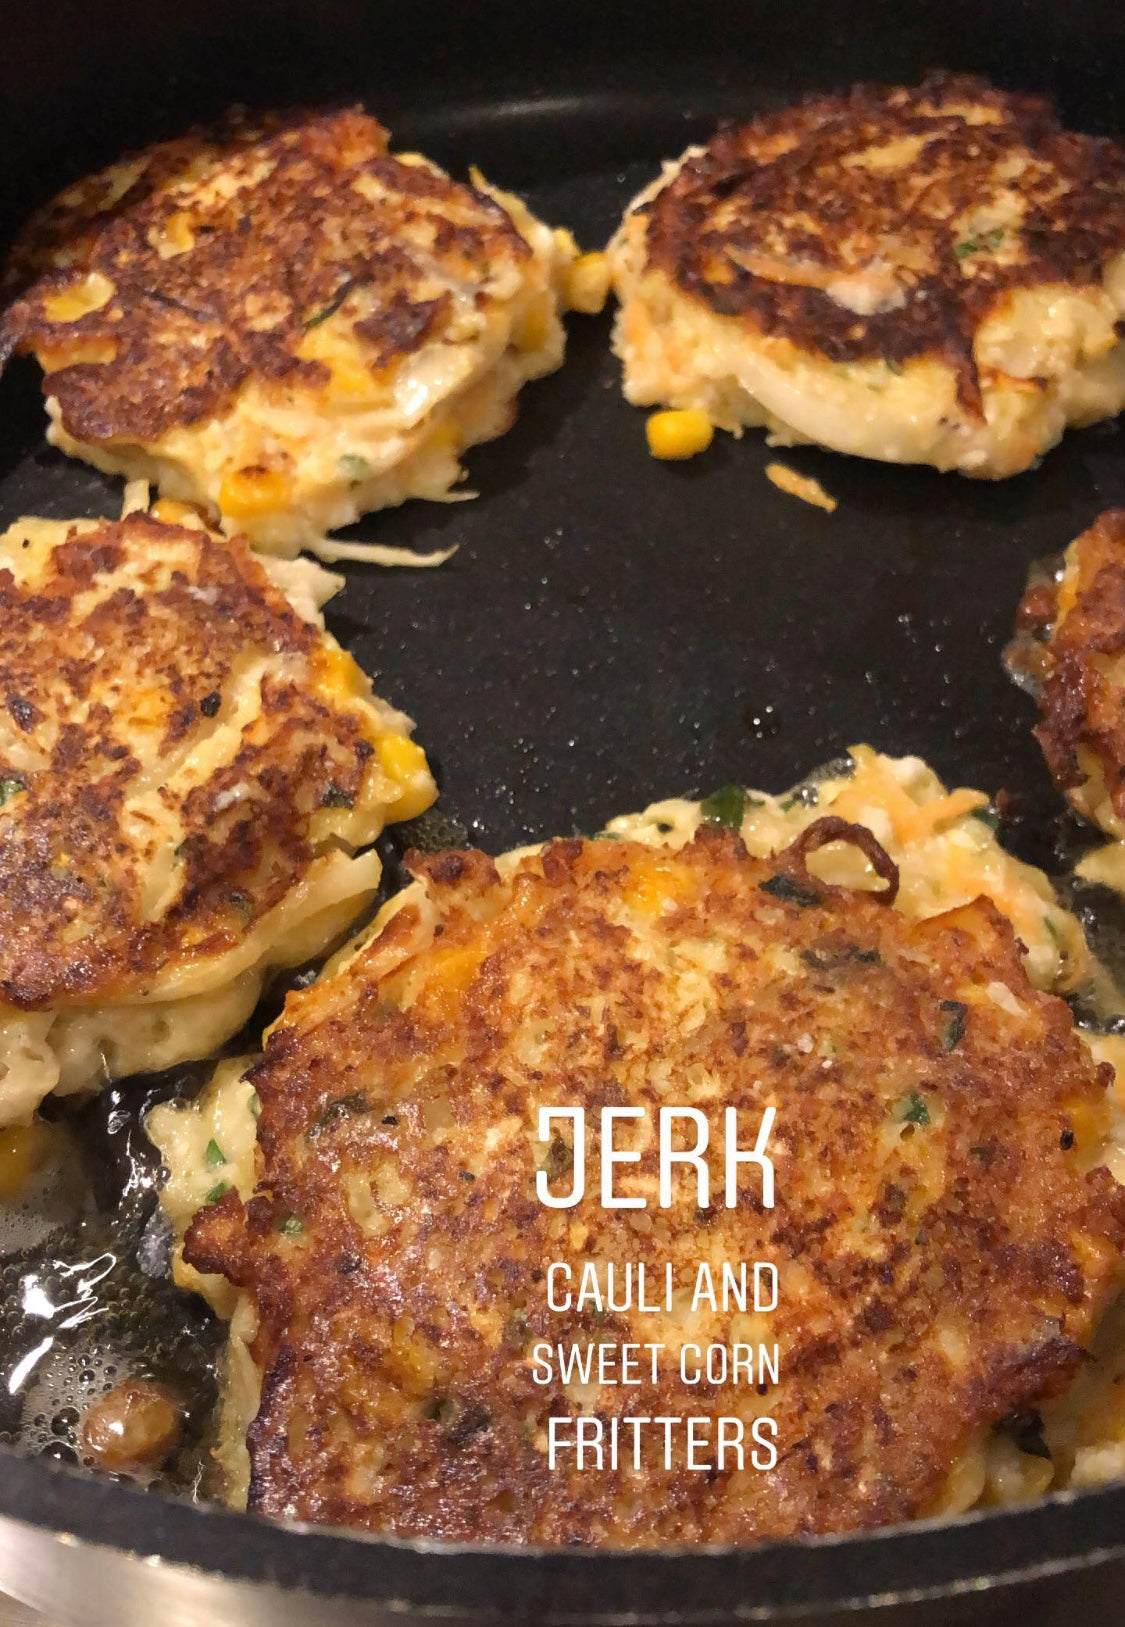 Jerk cauliflower and sweetcorn fritters